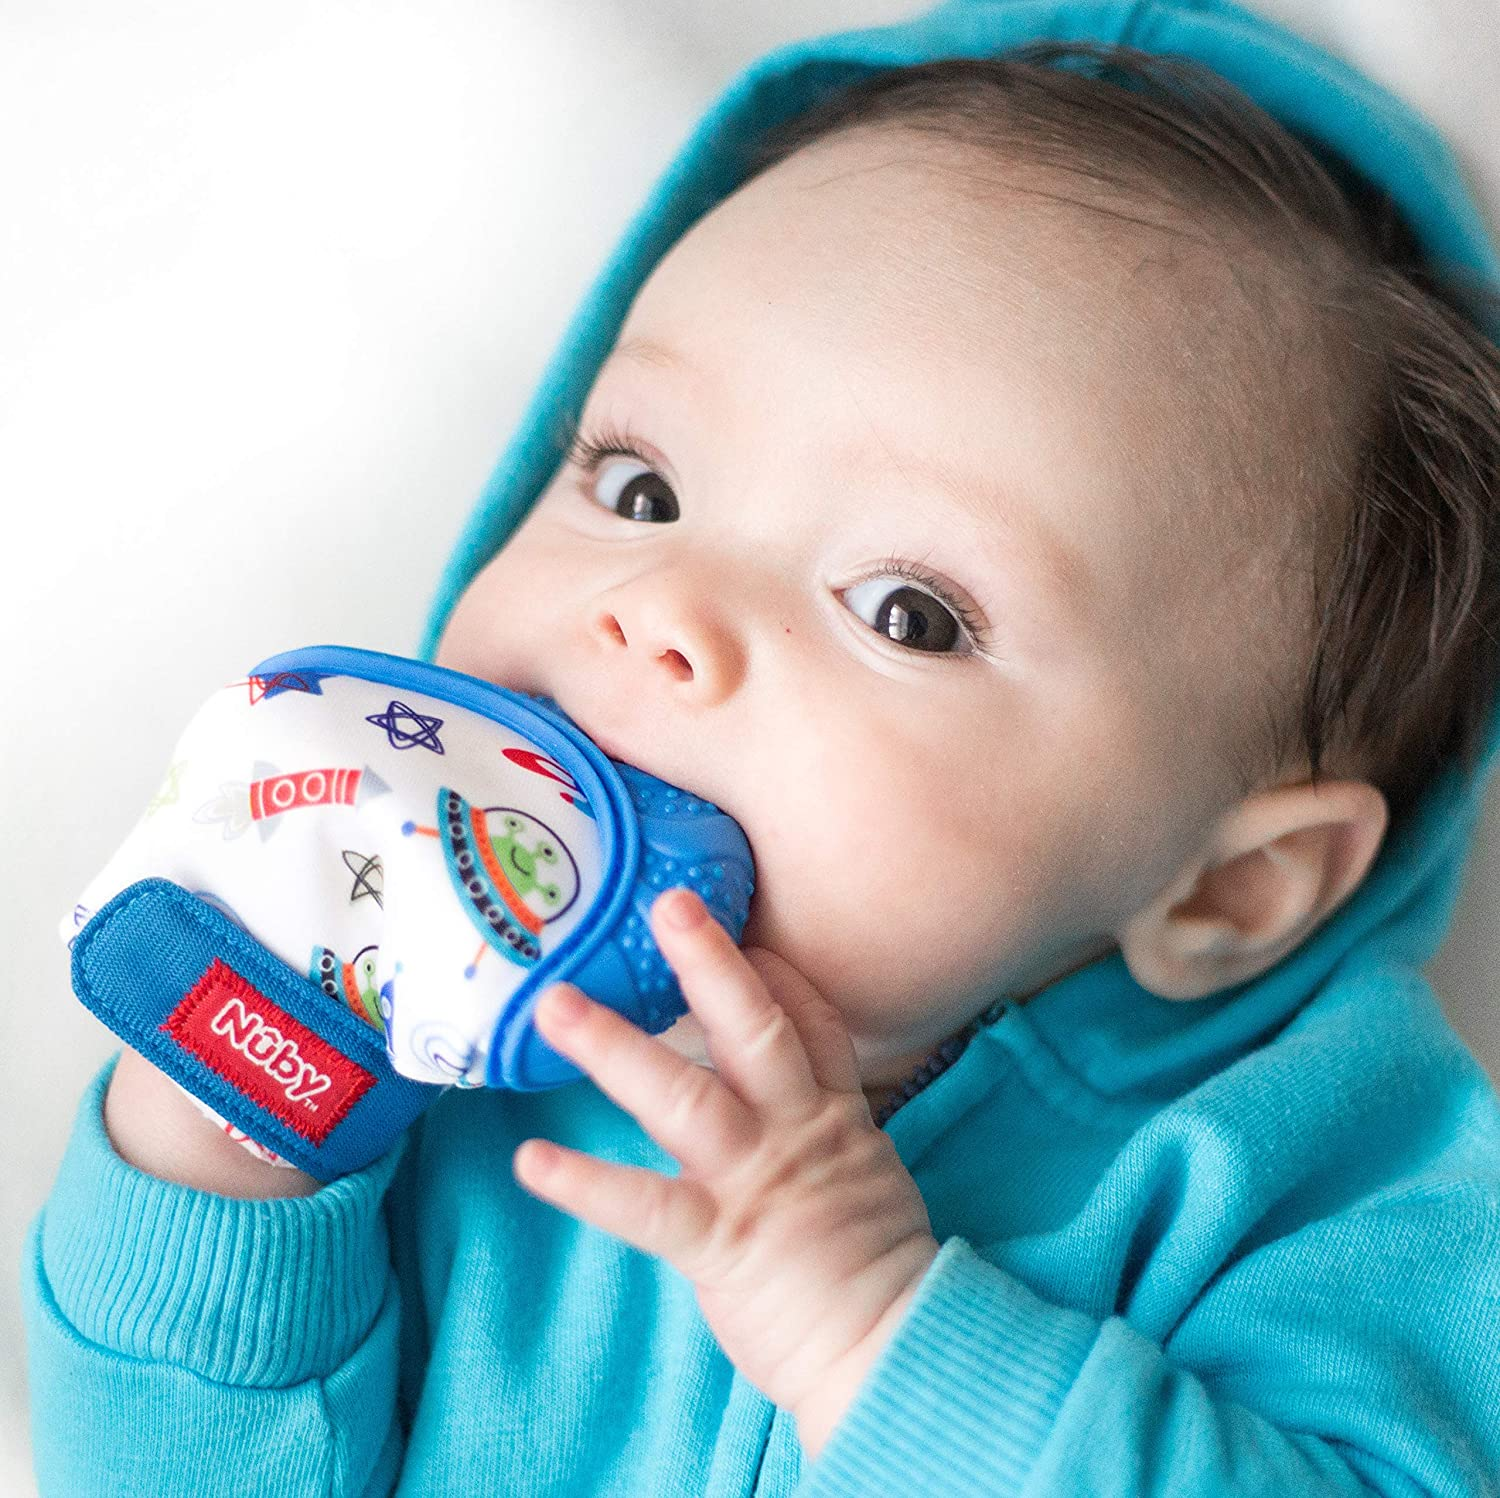 FREE SHIPPING! Red NEW Nuby Soothing Teething Mitten with Hygienic Travel Bag